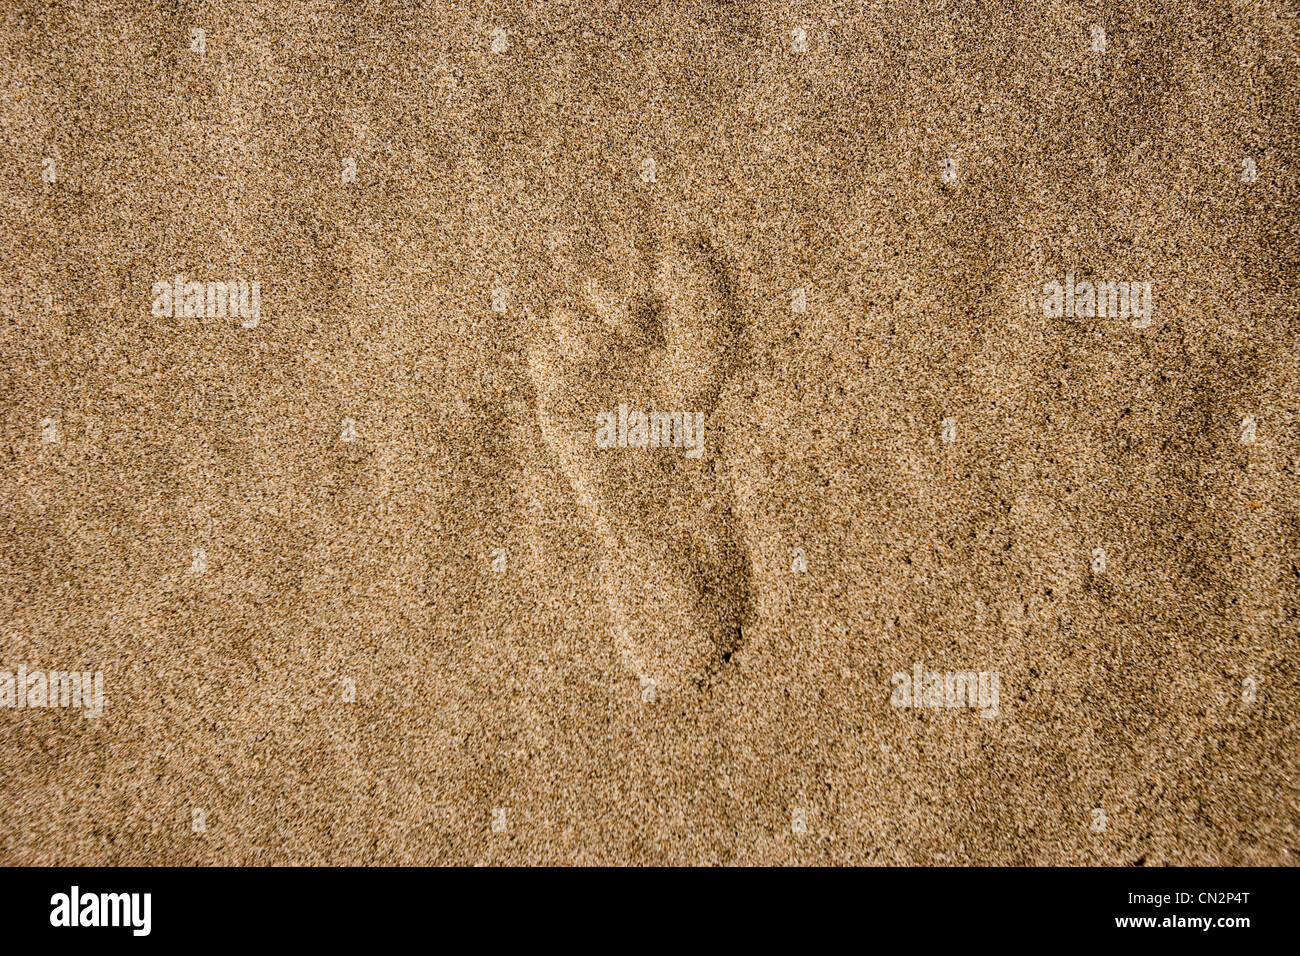 Single footprint in sand - Stock Image